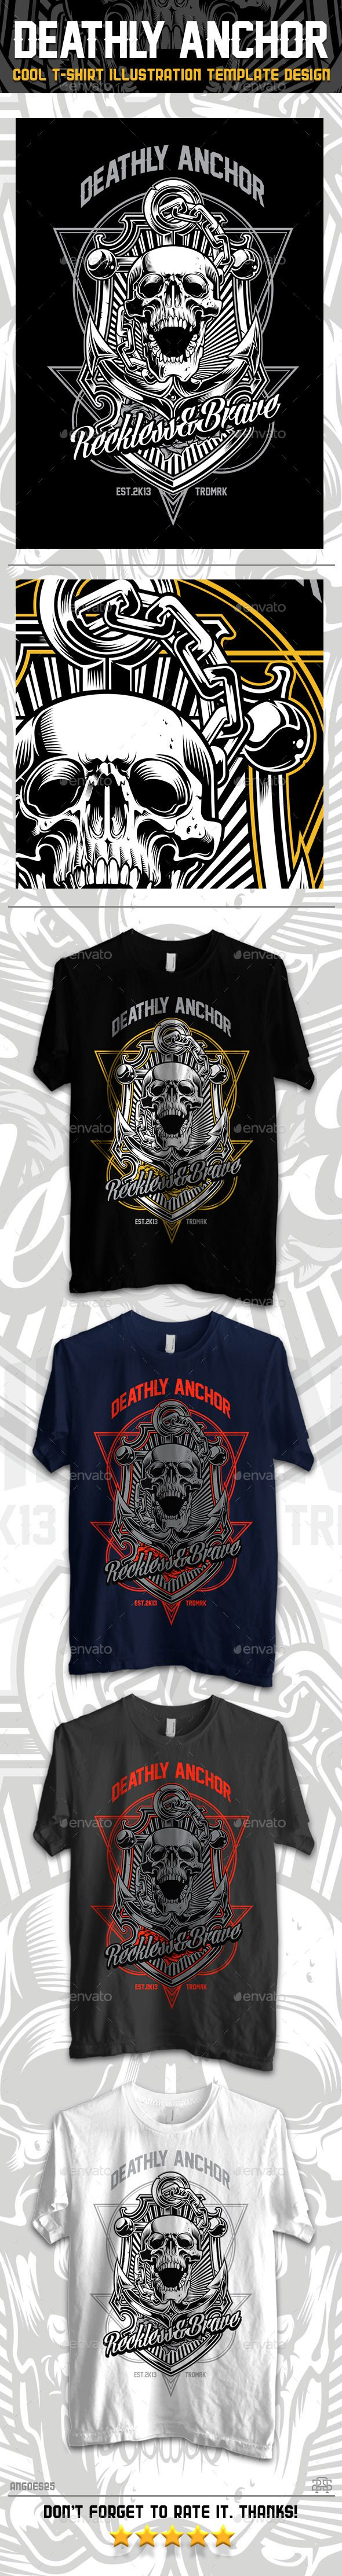 Black t shirt vector ai - Deathly Anchor T Shirt Vector Illustration Design Download Http Graphicriver